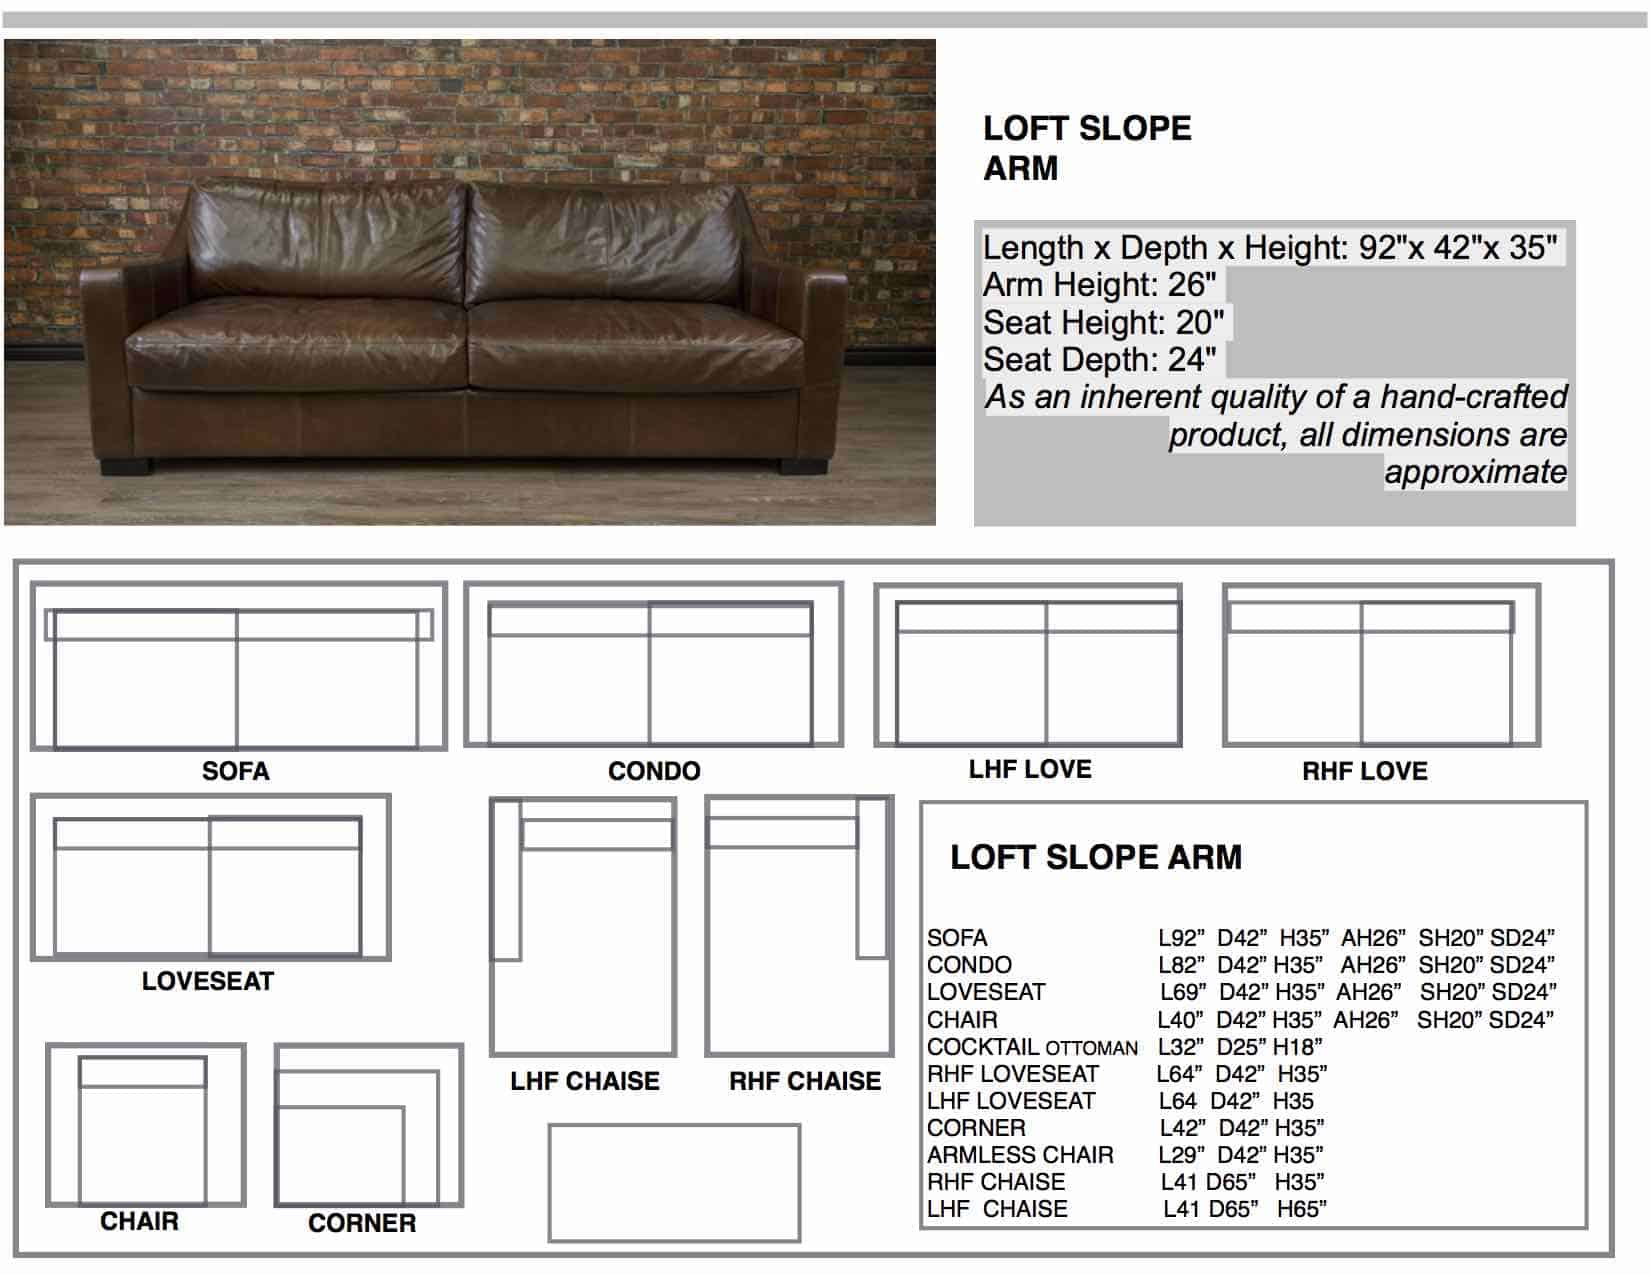 Loft Slope Arm Leather Sofa | Canada's Boss Leather Sofas And Furniture Intended For Loft Arm Sofa Chairs (Photo 11 of 20)